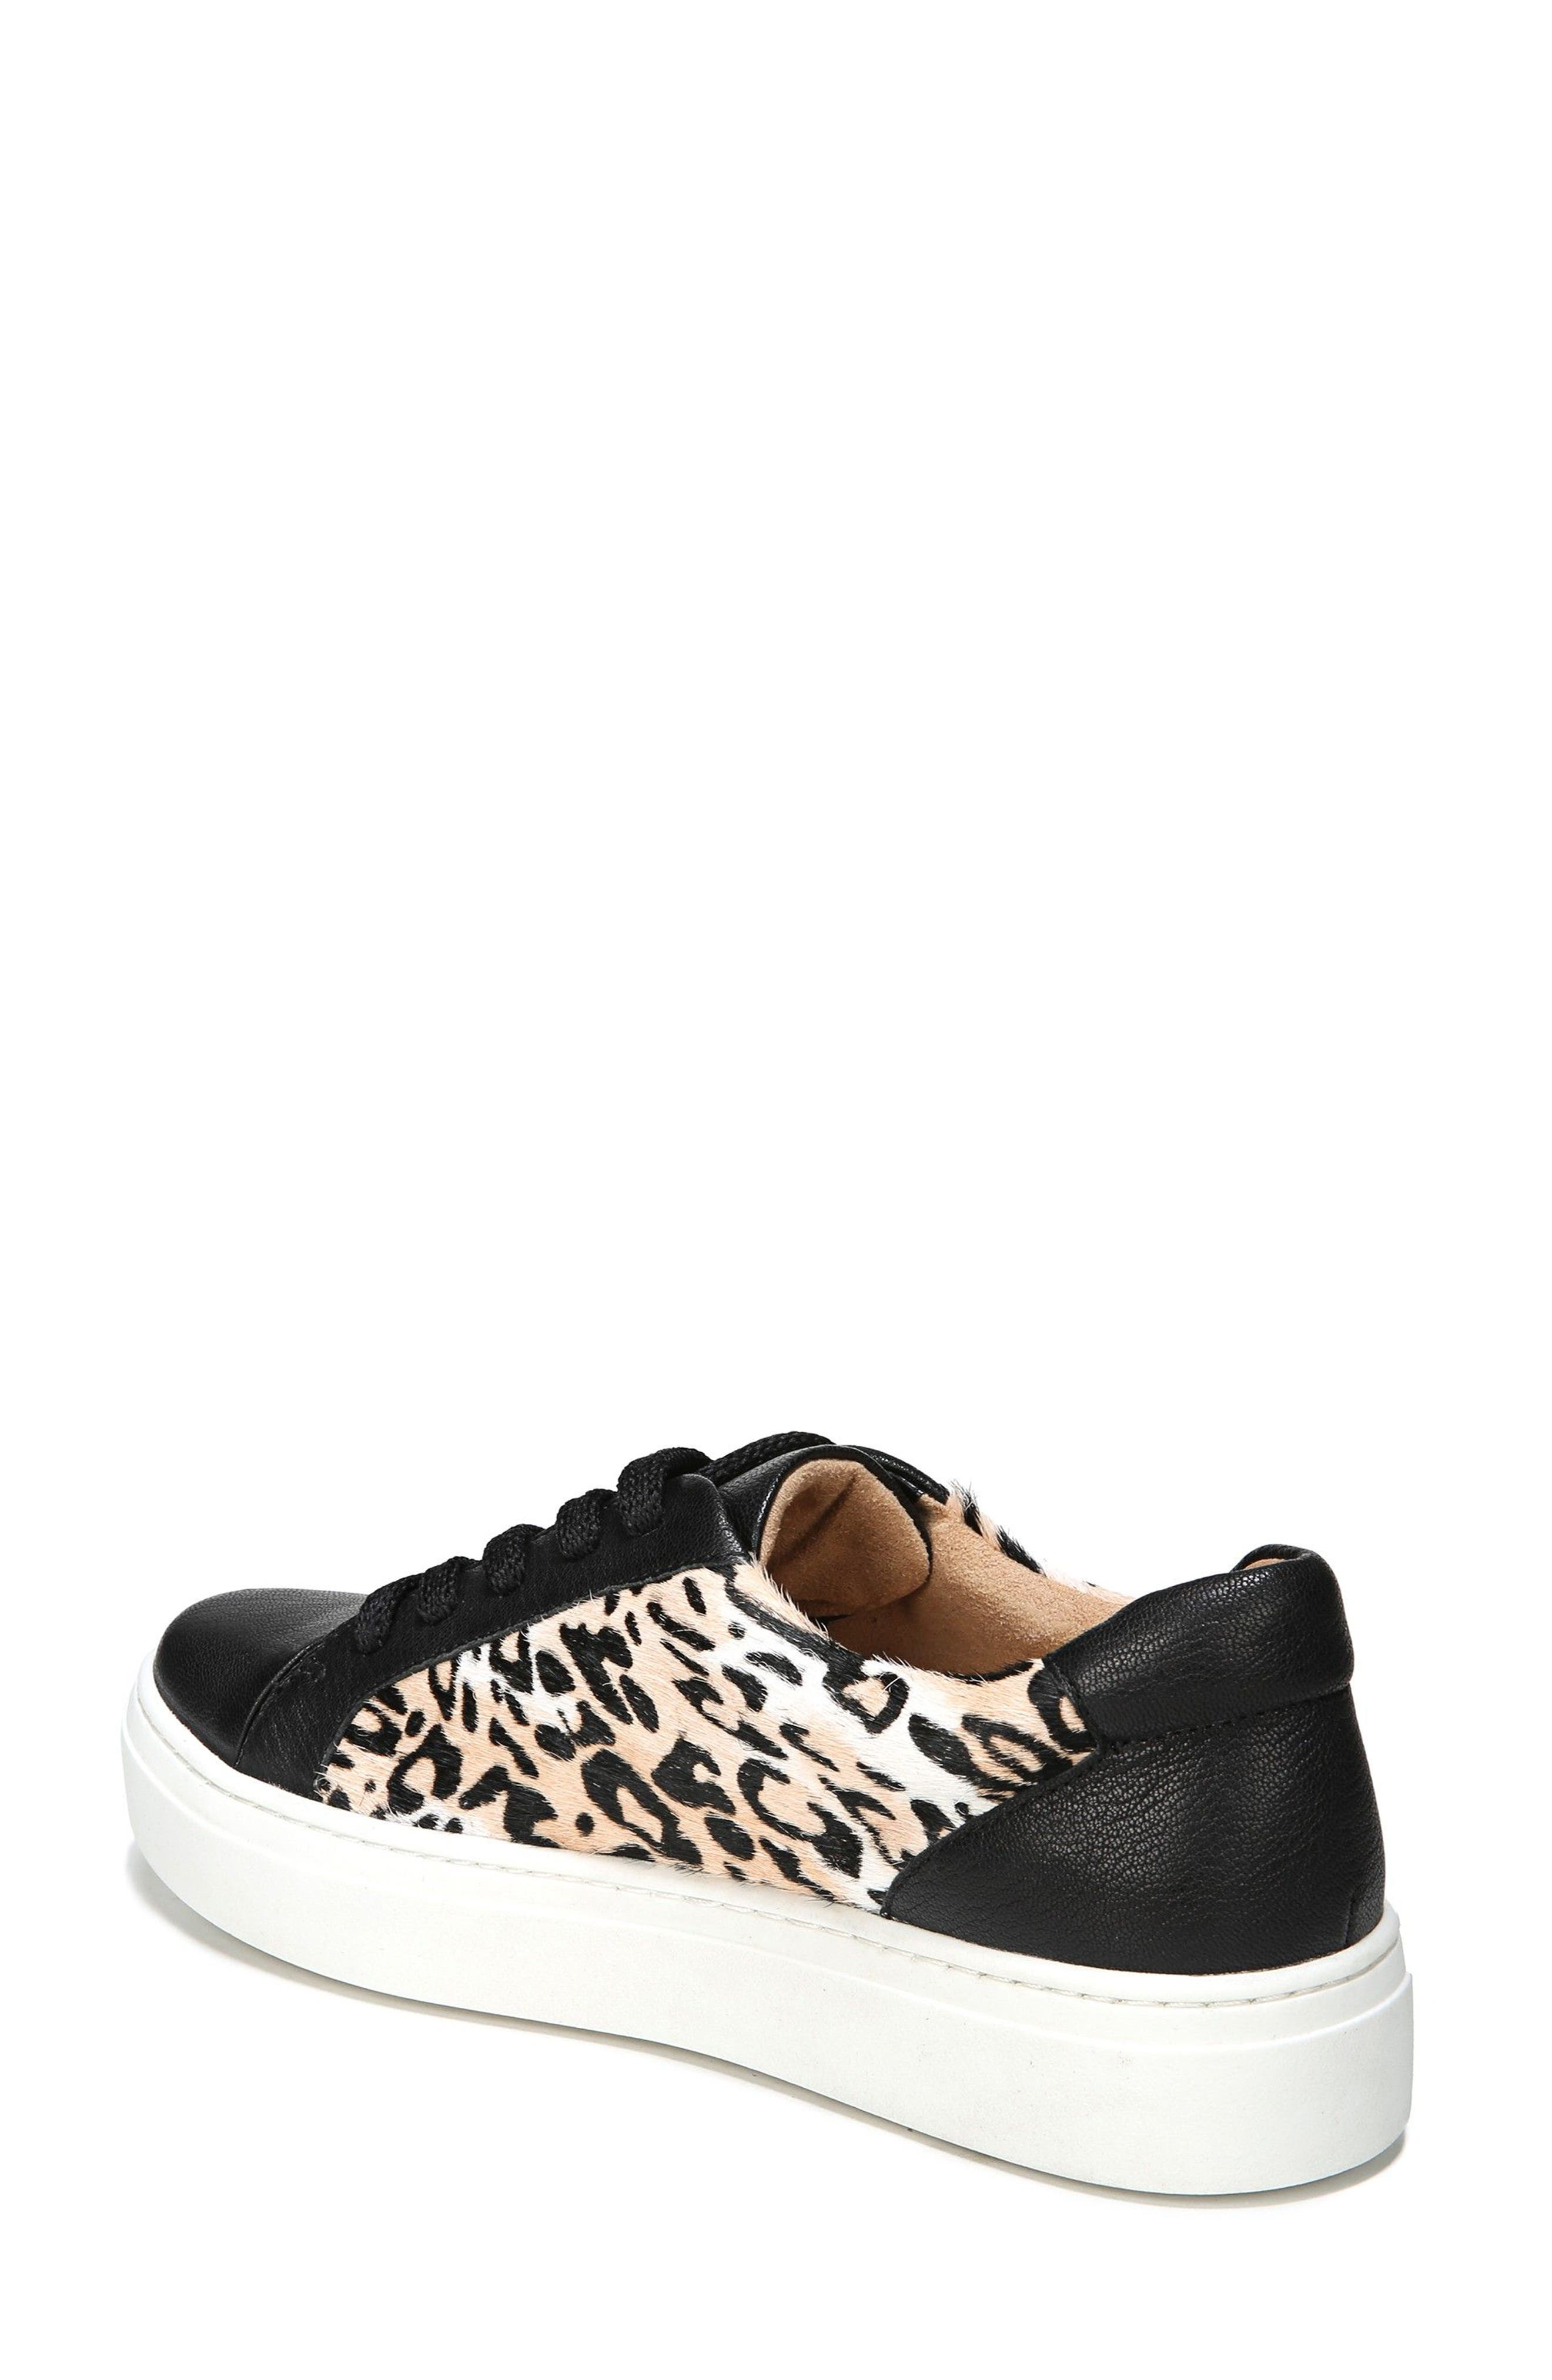 Alternate Image 2  - Naturalizer Cairo Sneaker (Women)